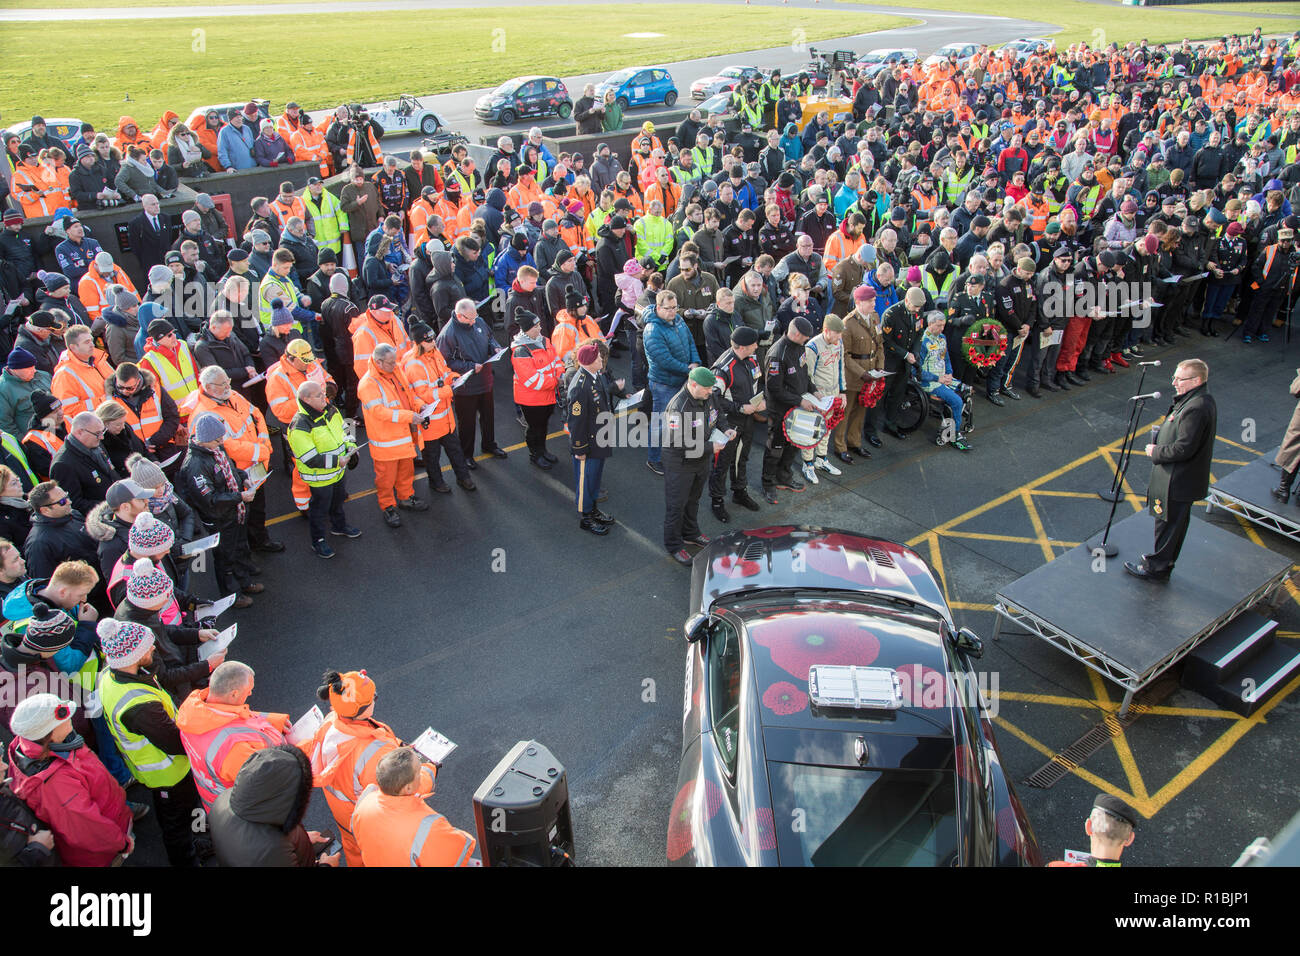 Ty Croes, Anglesey, Wales, UK. 11th Nov, 2018. Remembering the 100th anniversary of the end of WW1 at the 5th Race of Remembrance at the Anglesey Circuit in Wales. Mission Motorsport helpingthe current generation of veterans rehabilitate through motorsport. 50 teams of drivers come to race for 12 hours in a wide range of different cars. Racing is suspended on the 11th hour for a service of remembrance in the pit lane before returning to racing. The service includes a team of veterans from the US and Canadian armed forces Credit James Wadham / Alamy Live News - Stock Image